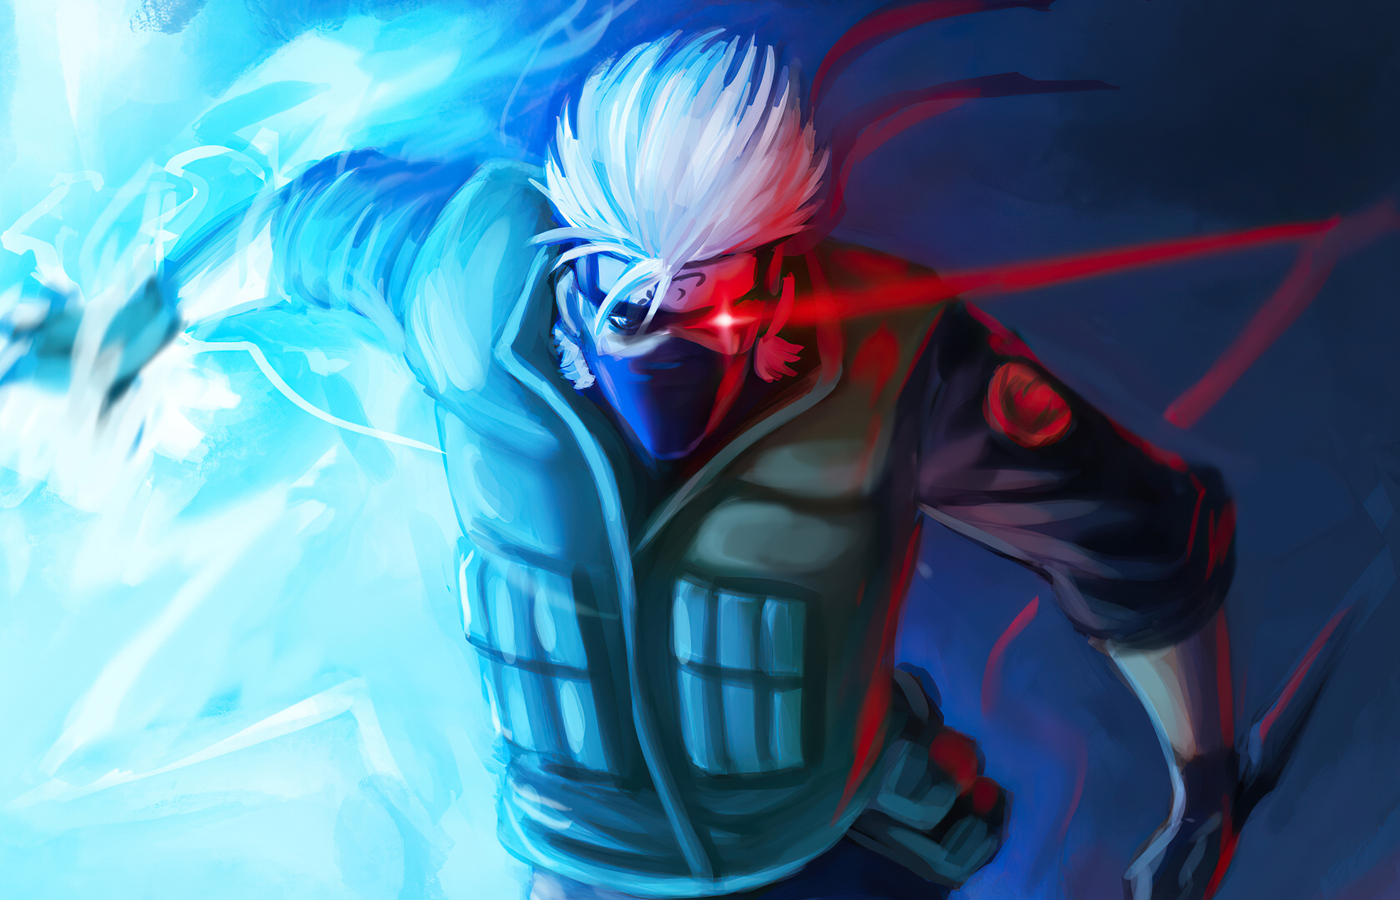 1400x900 Kakashi 4k 1400x900 Resolution HD 4k Wallpapers ...